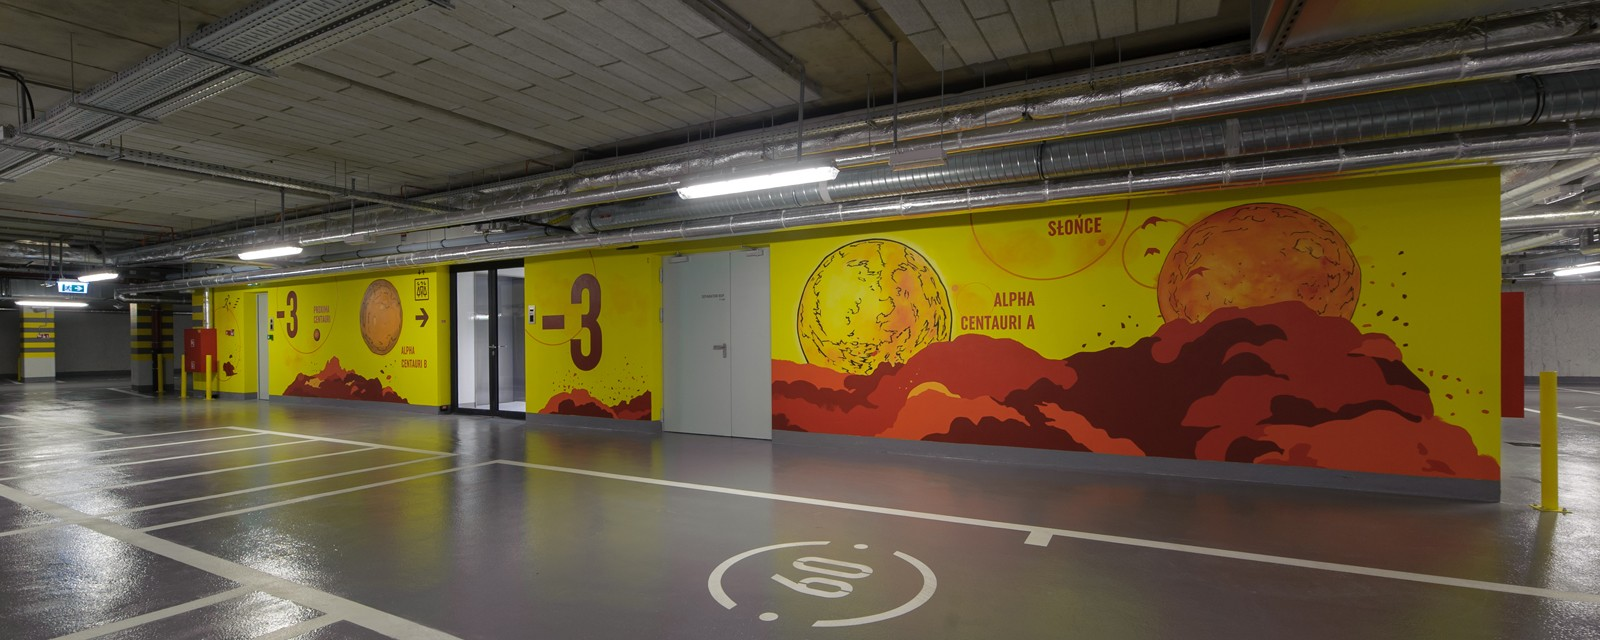 Painted sun and stars on garage walls in Warsaw's Proximo office building | PROXIMO | Portfolio